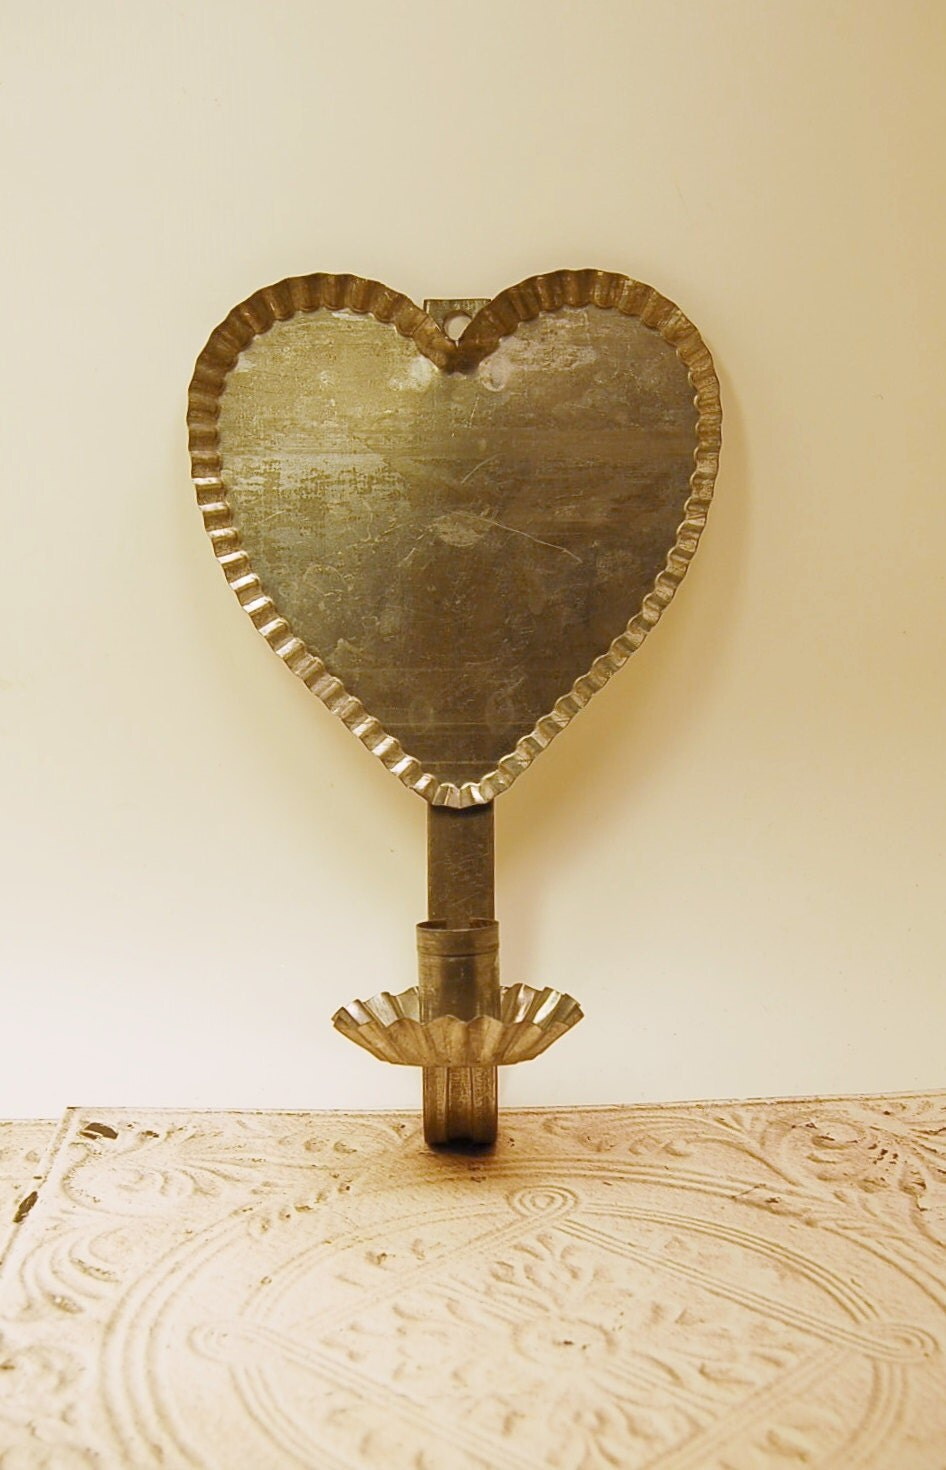 Tin Wall Sconce Candle Holder : Tin Candle Wall Sconce Holder